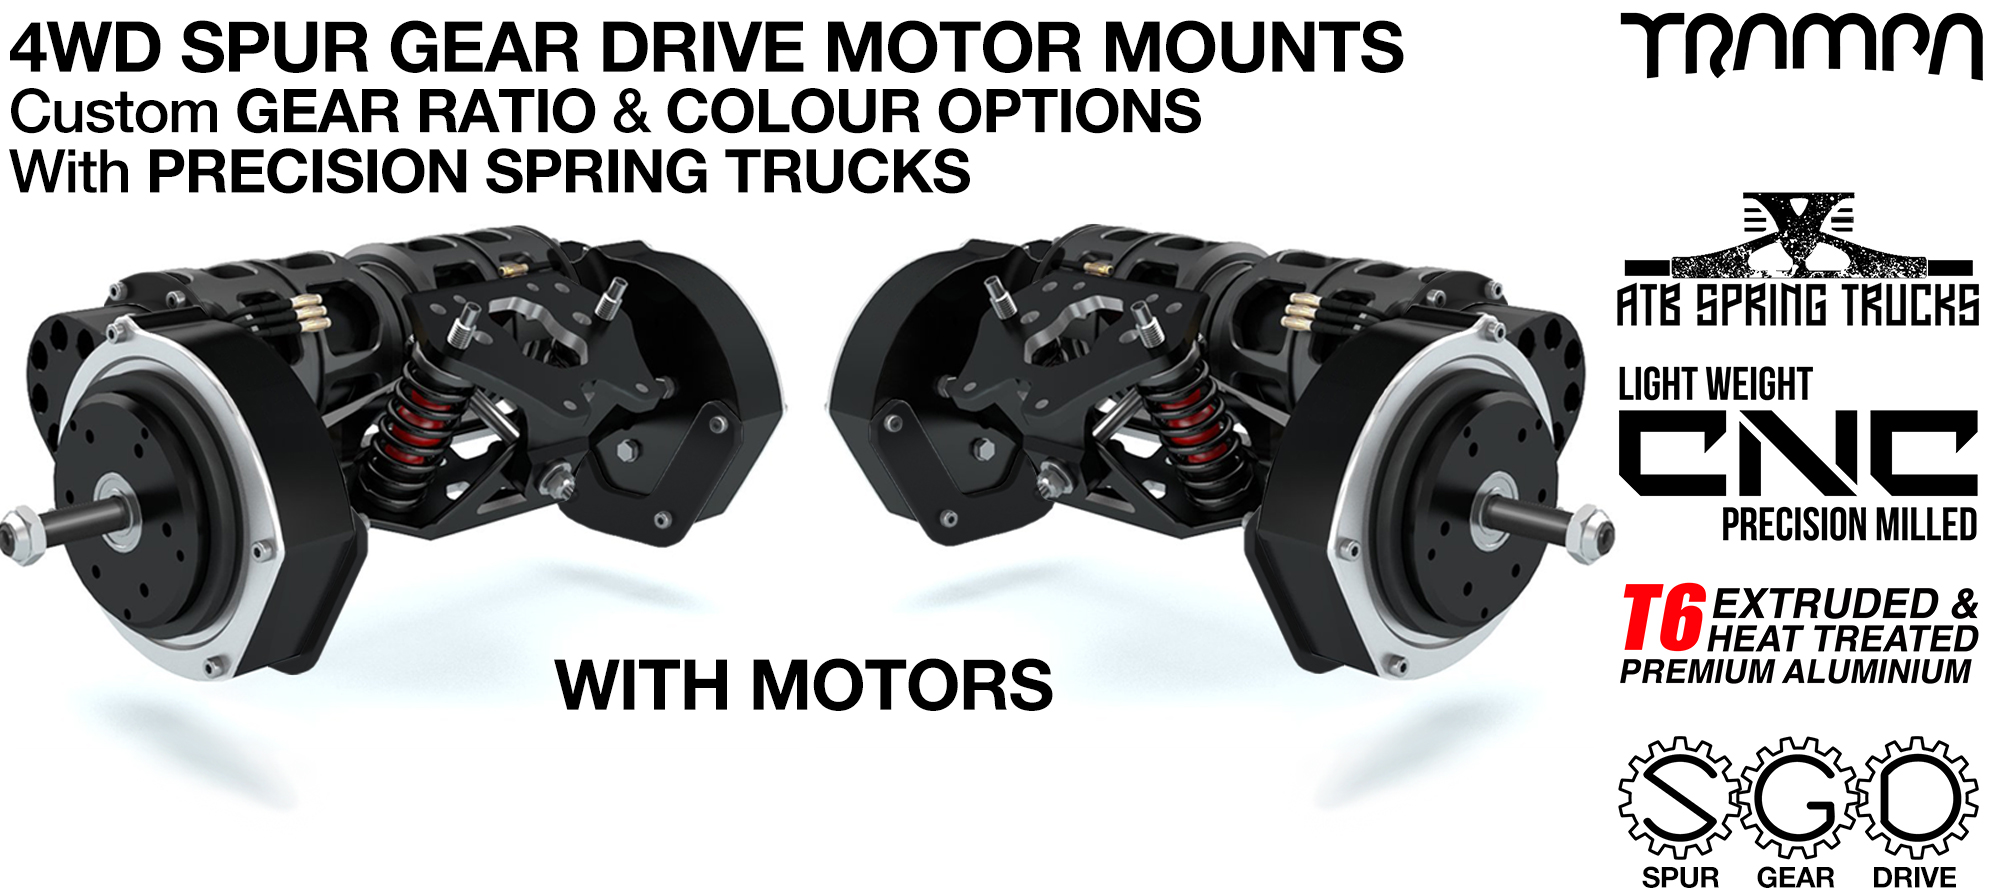 4WD Mountainboard Spur Gear Drive Motor Mounts on CNC Precision TRUCKS with Custom Motors